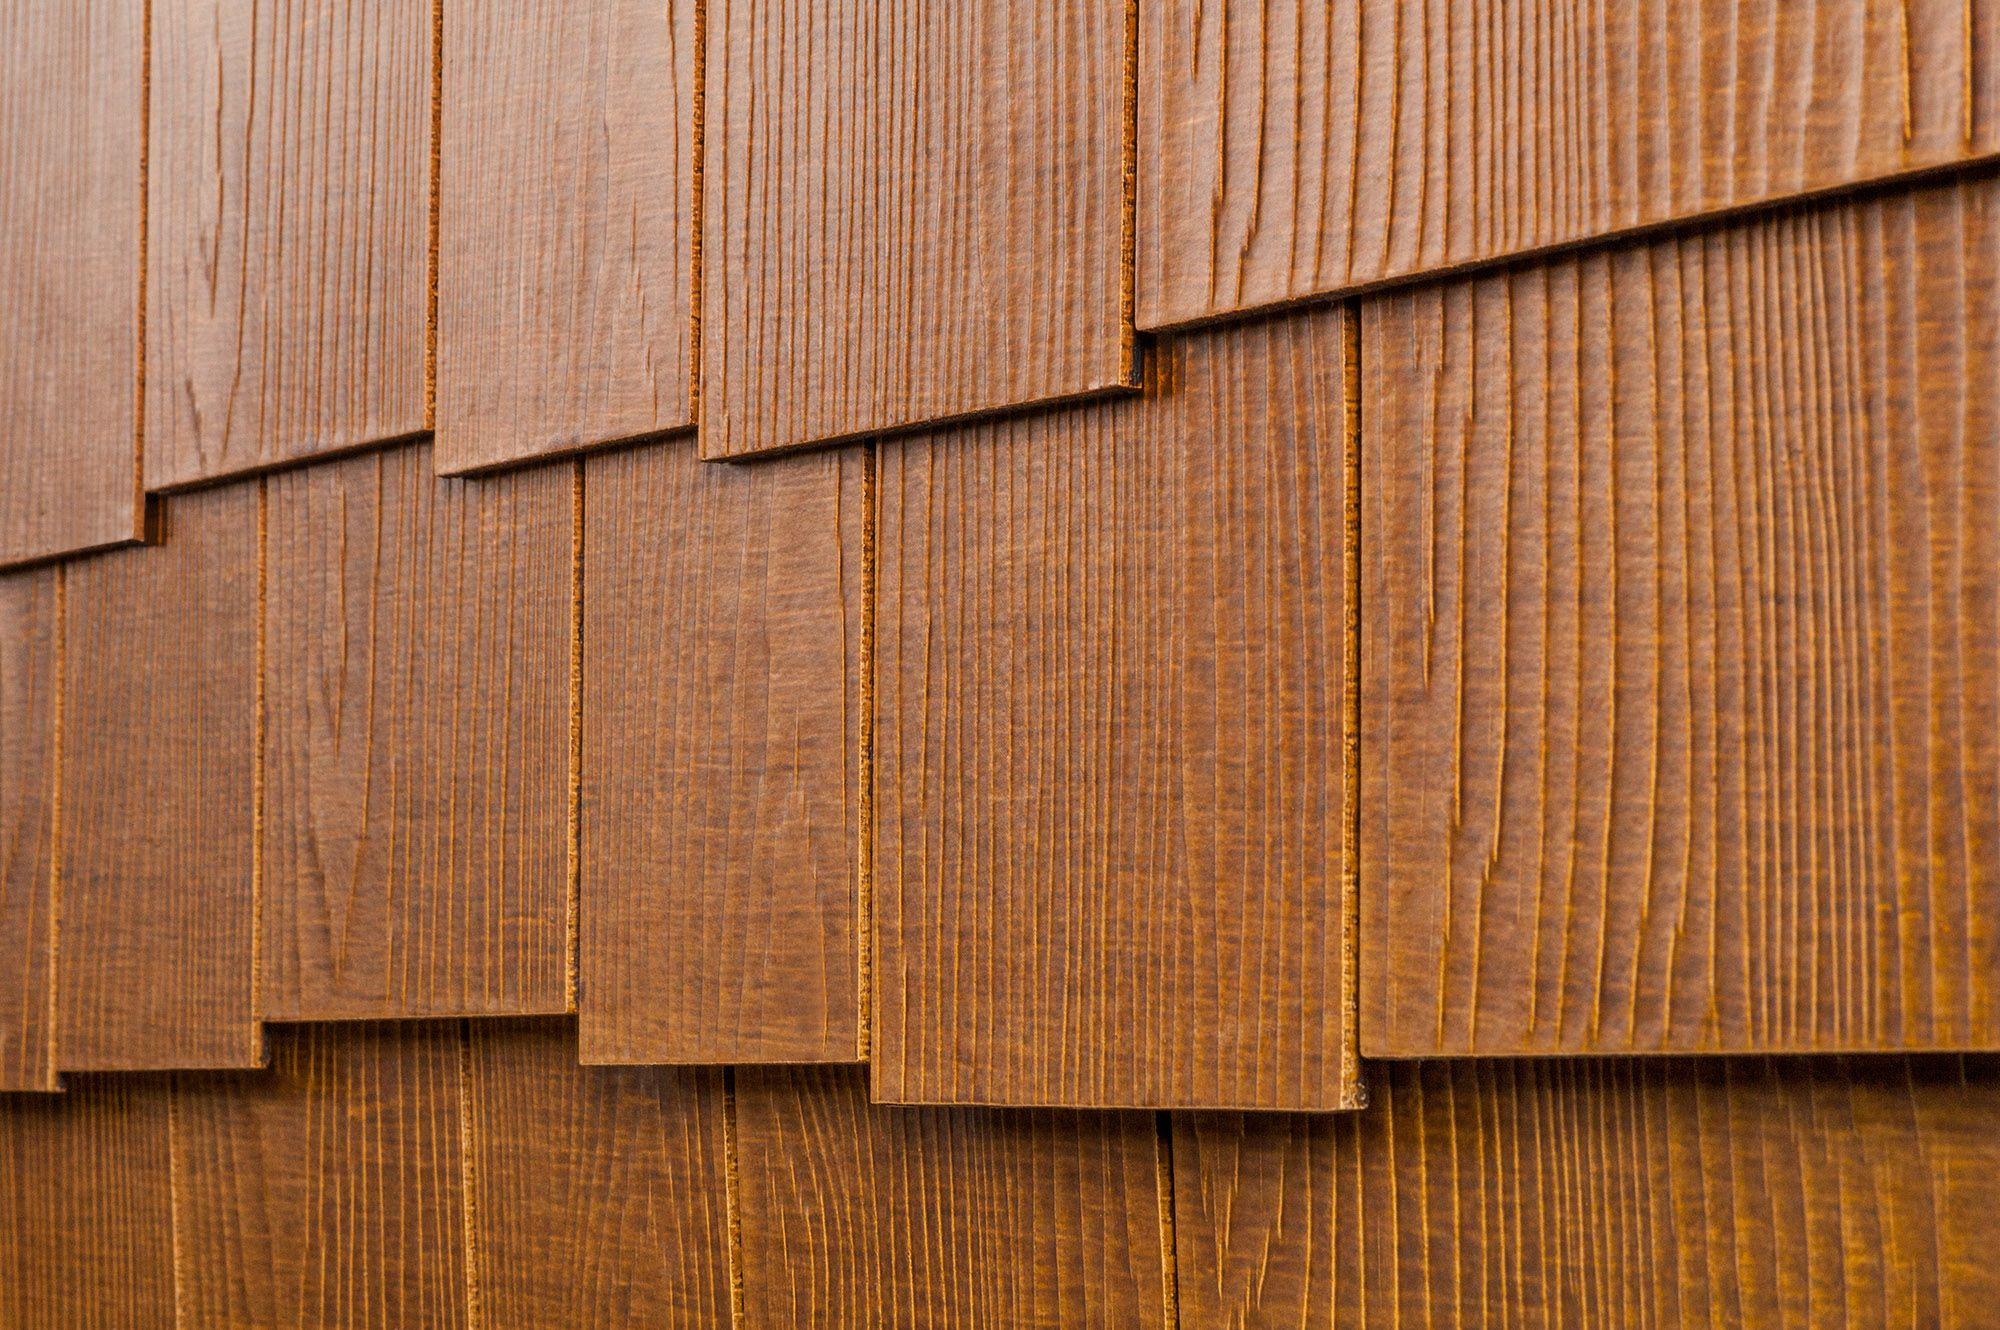 Fiber Cement Siding Rustic Shingle Panels Chestnut Cedar Staggered Edge 1 4 X16 X4 With Images Cement Siding Fiber Cement Siding Shingle Panel